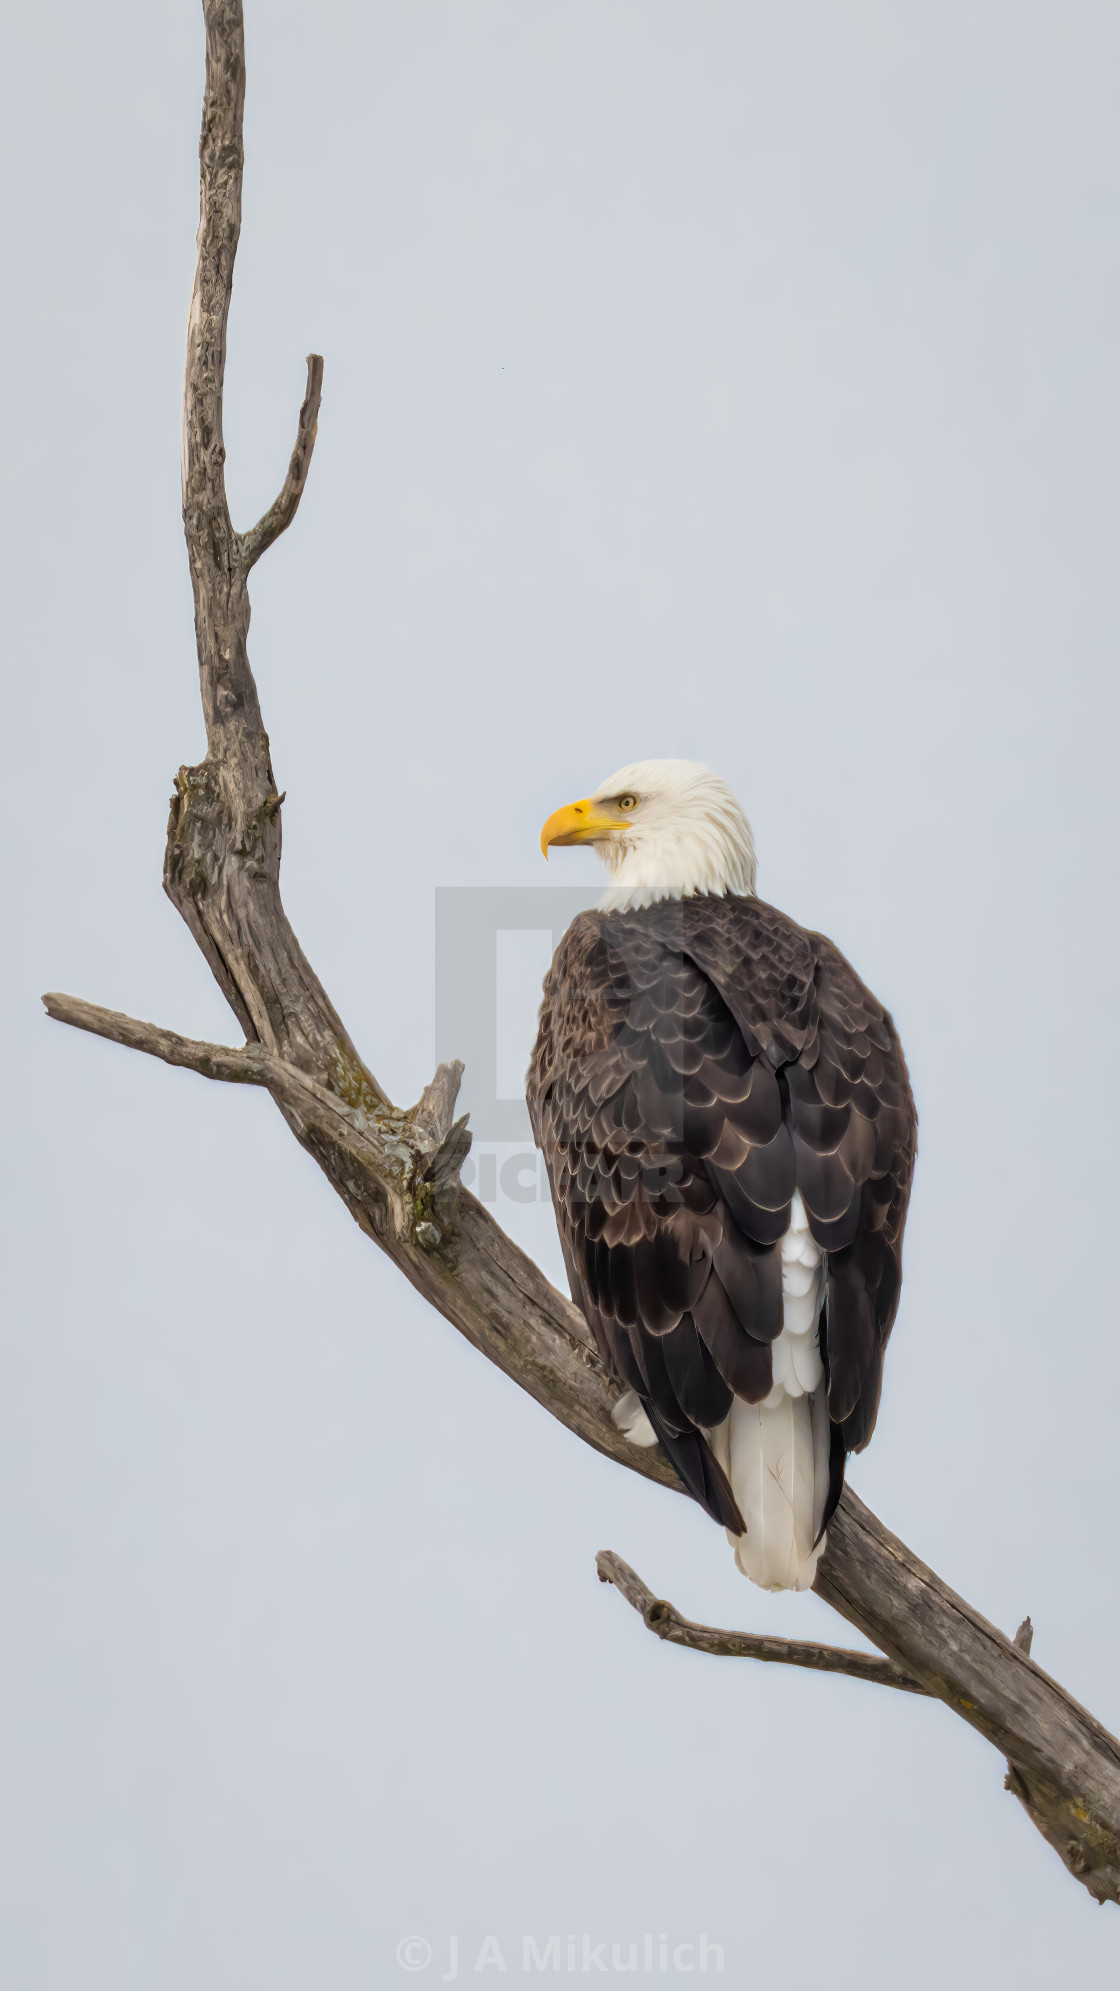 """Bald Eagle perched on a branch"" stock image"